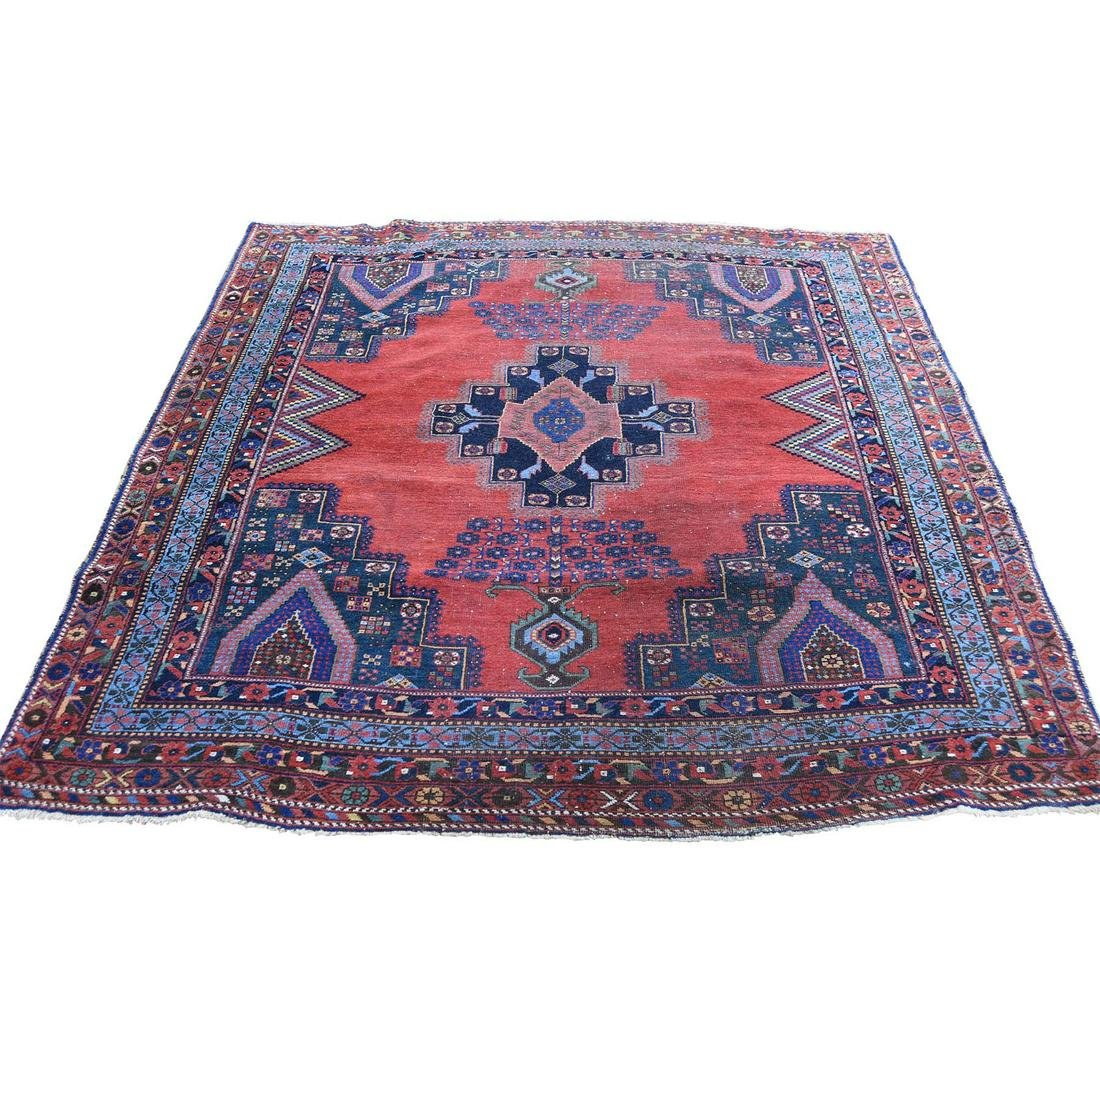 Red Antique Persian Afshar Worn Pure Wool Hand-Knotted